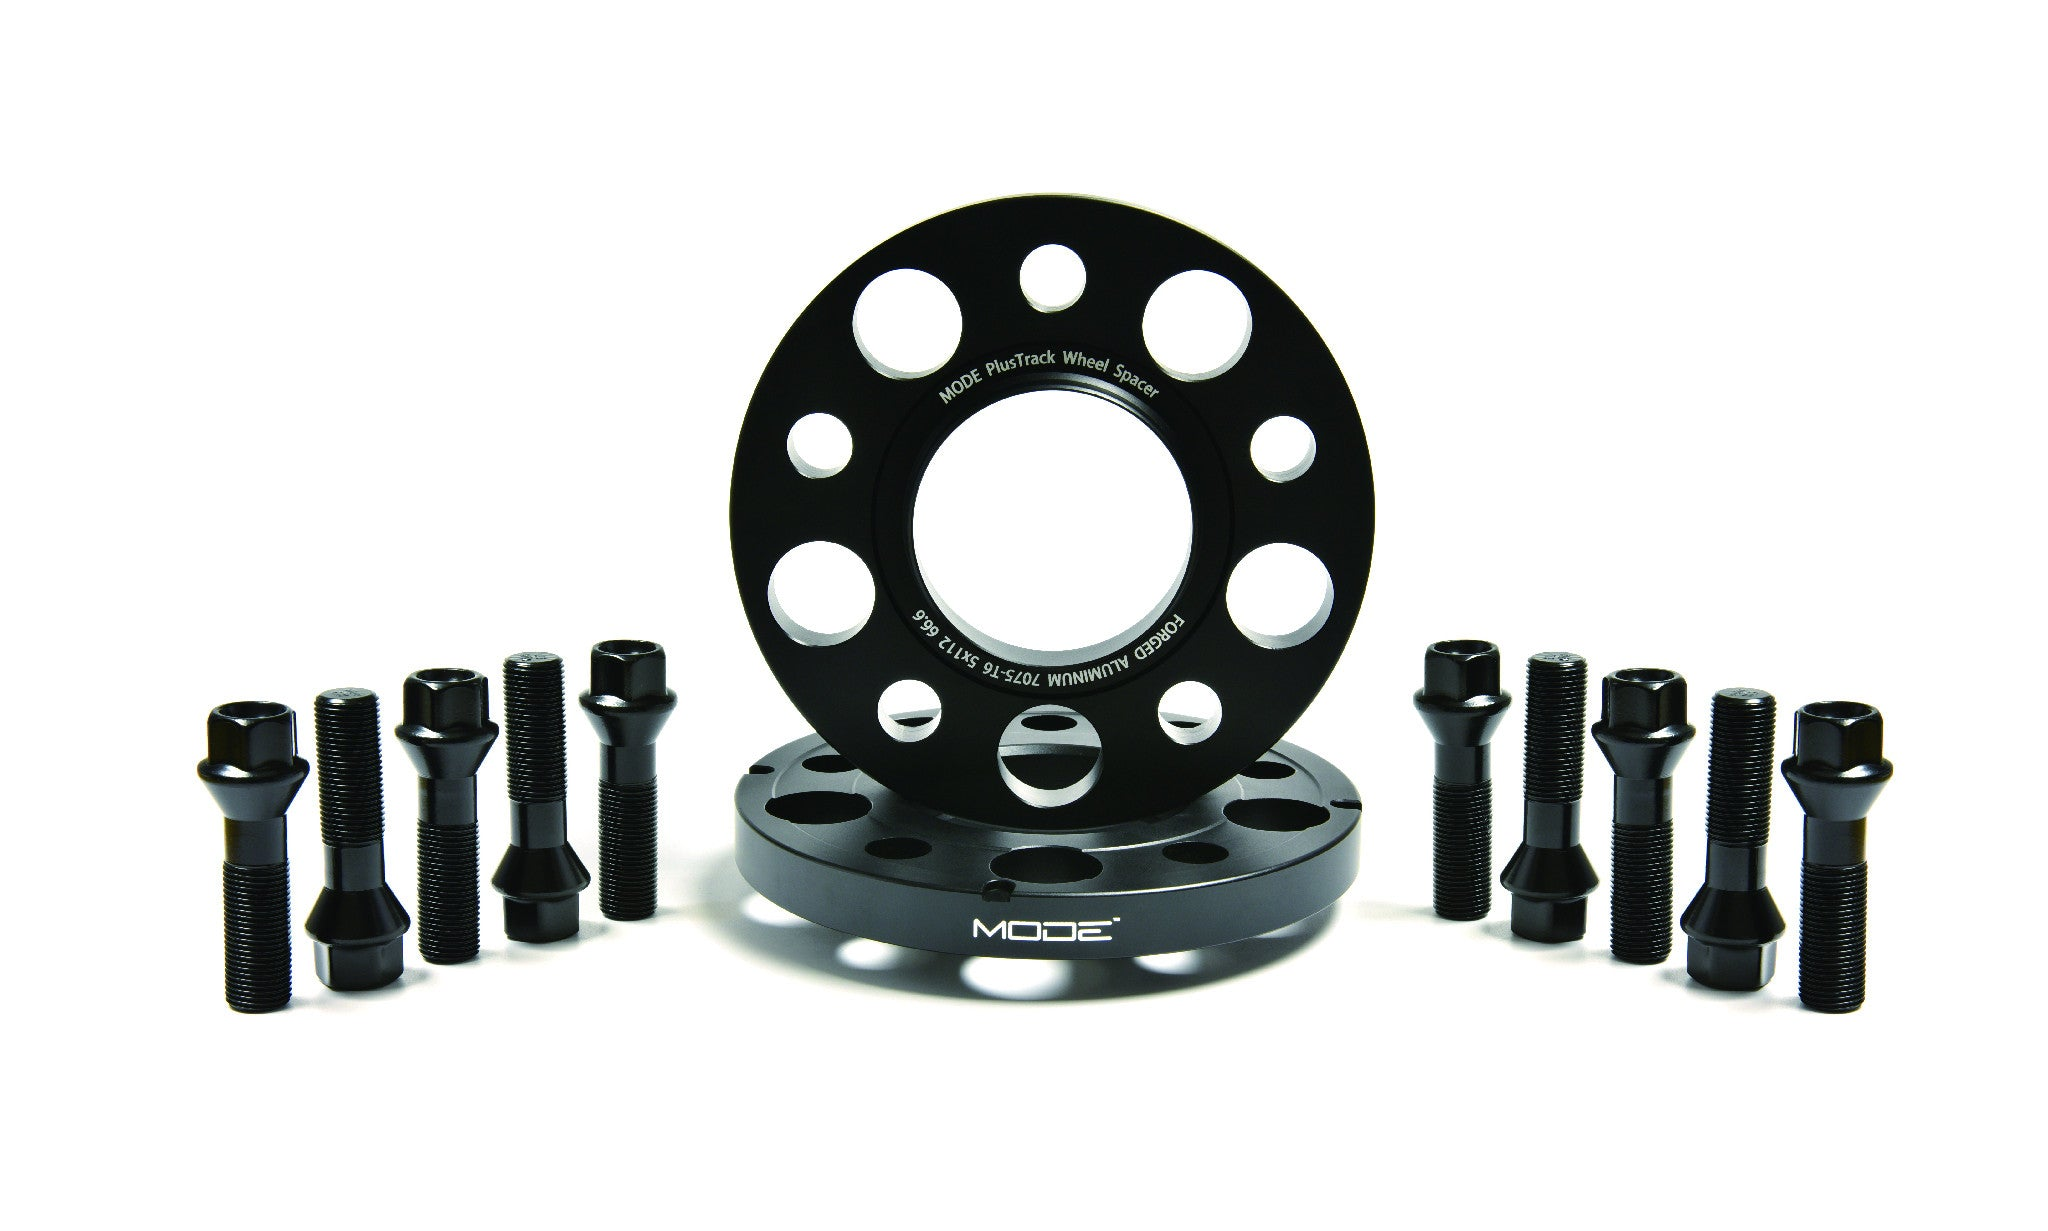 MODE PlusTrack Wheel Spacer Kit 8mm Mercedes Benz / AMG - MODE Auto Concepts